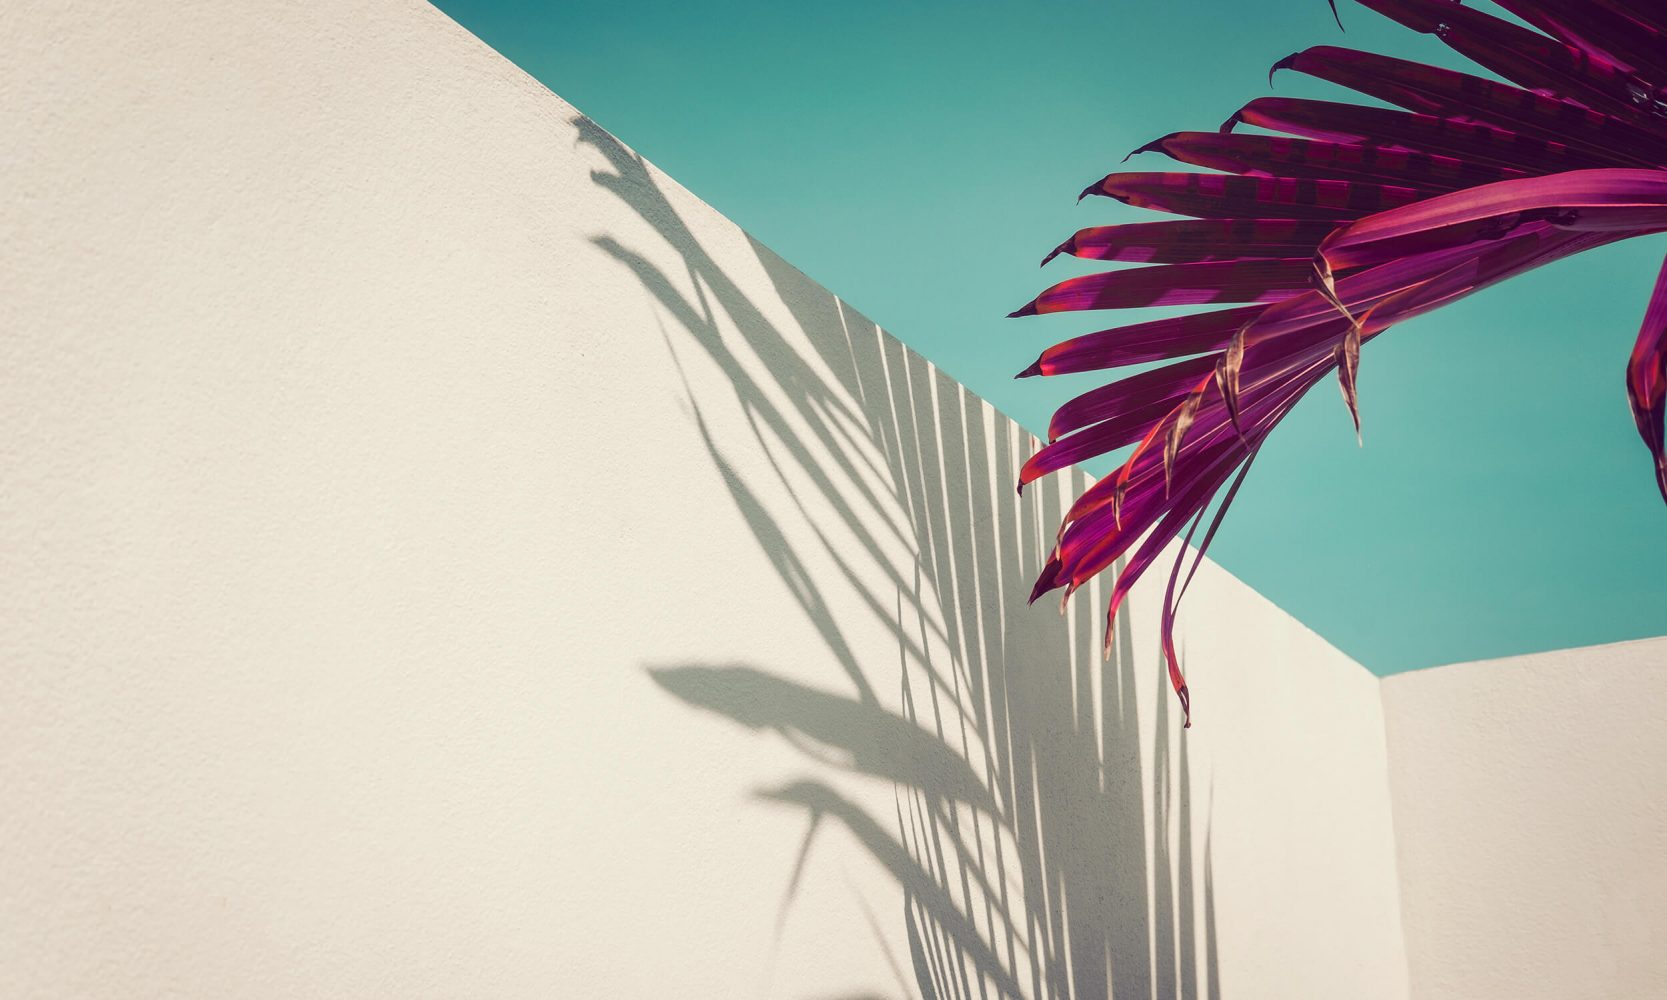 tropical leaf shadow on wall